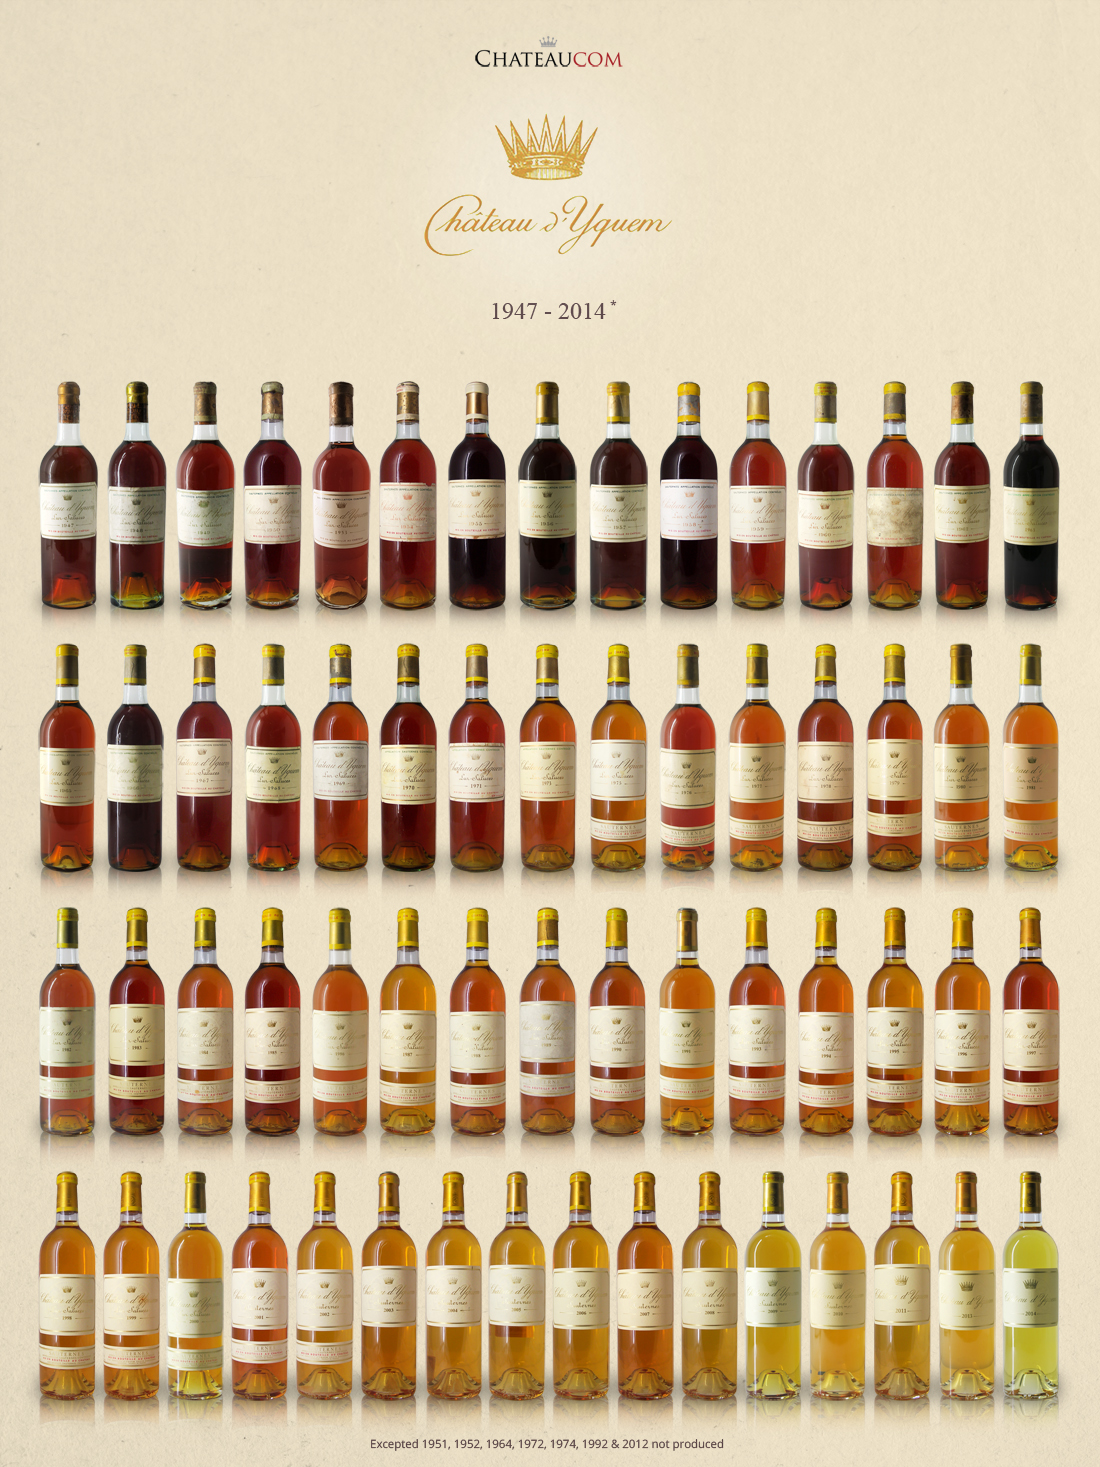 Collection Château d'Yquem 1947-2014